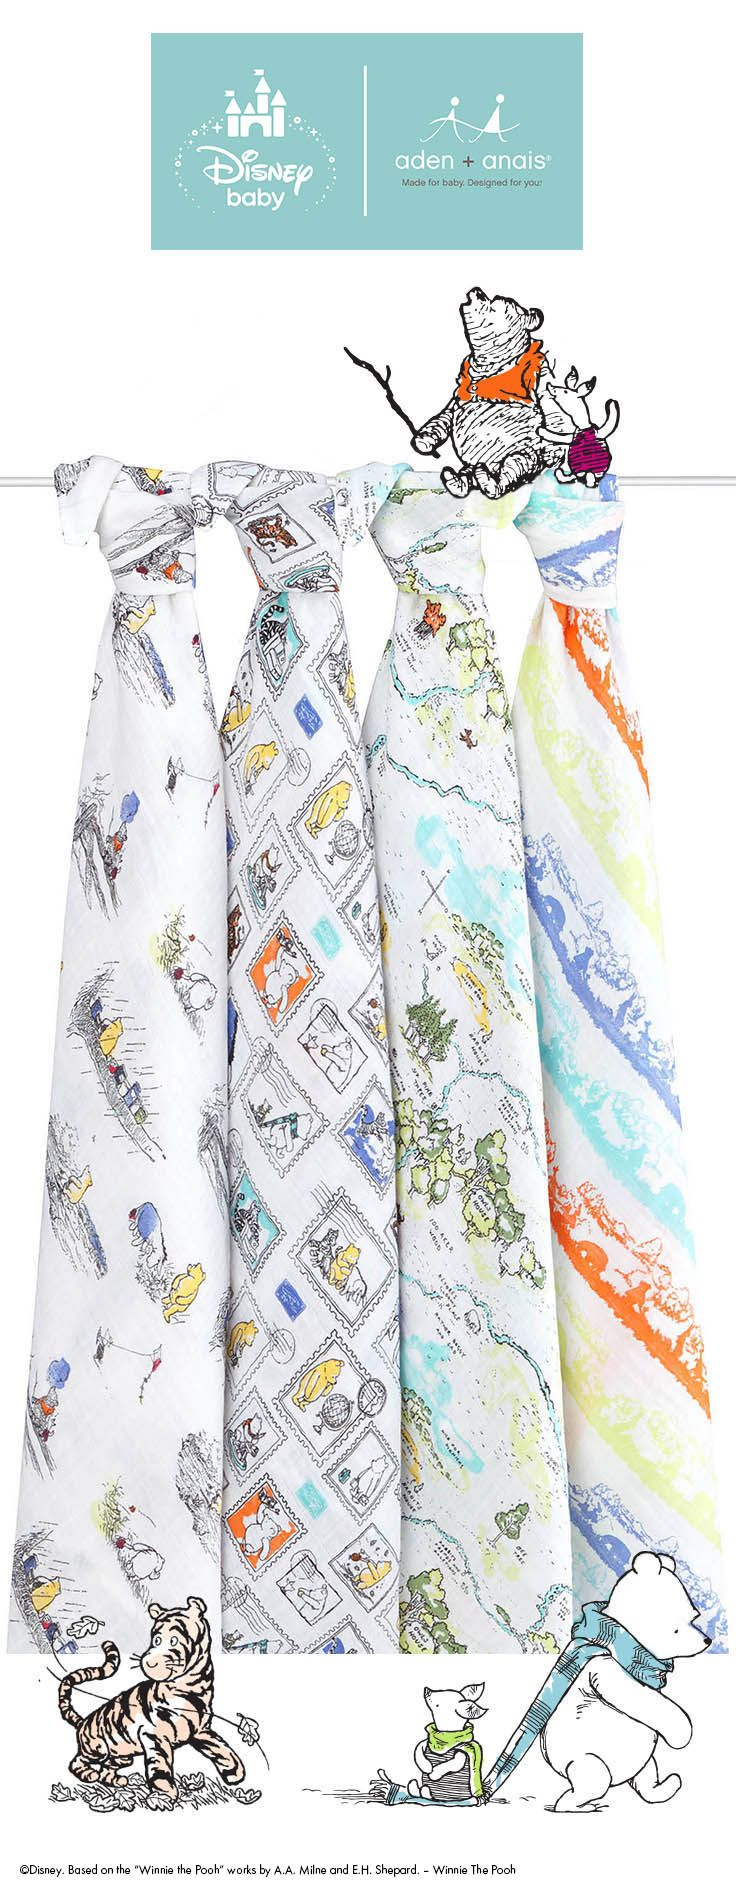 The cotton muslin swaddle that started it all pairs perfectly with these whimsical Disney Baby Winnie the Pooh prints.